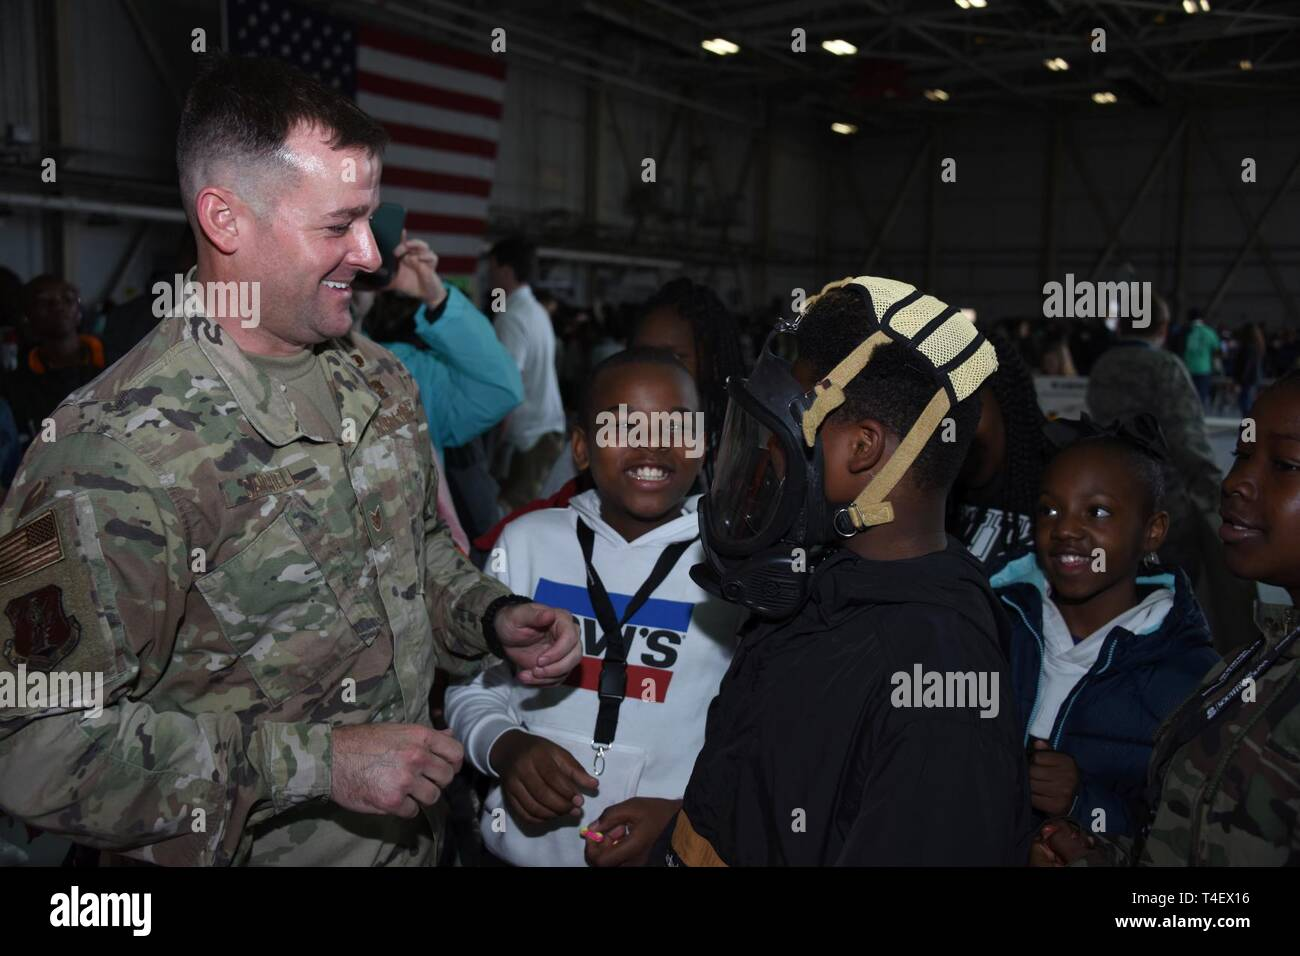 More than 2,000 students and teachers from South Carolina participate in Science, Technology, Engineering and Mathematics events during McEntire STEM Day, hosted by the South Carolina National Guard at McEntire Joint National Guard Base, April 5, 2019. U.S. Air Force Staff Sgt. Robert Campbell, assigned to the 169th Civil Engineer Squadron's Emergency Management section, explains the use and purpose for using portable breathing aparatus. STEM Day provides an up-close opportunity to work with Swamp Fox Airmen to perform hands-on learning and view the inner workings of aircraft and advanced-tech - Stock Image